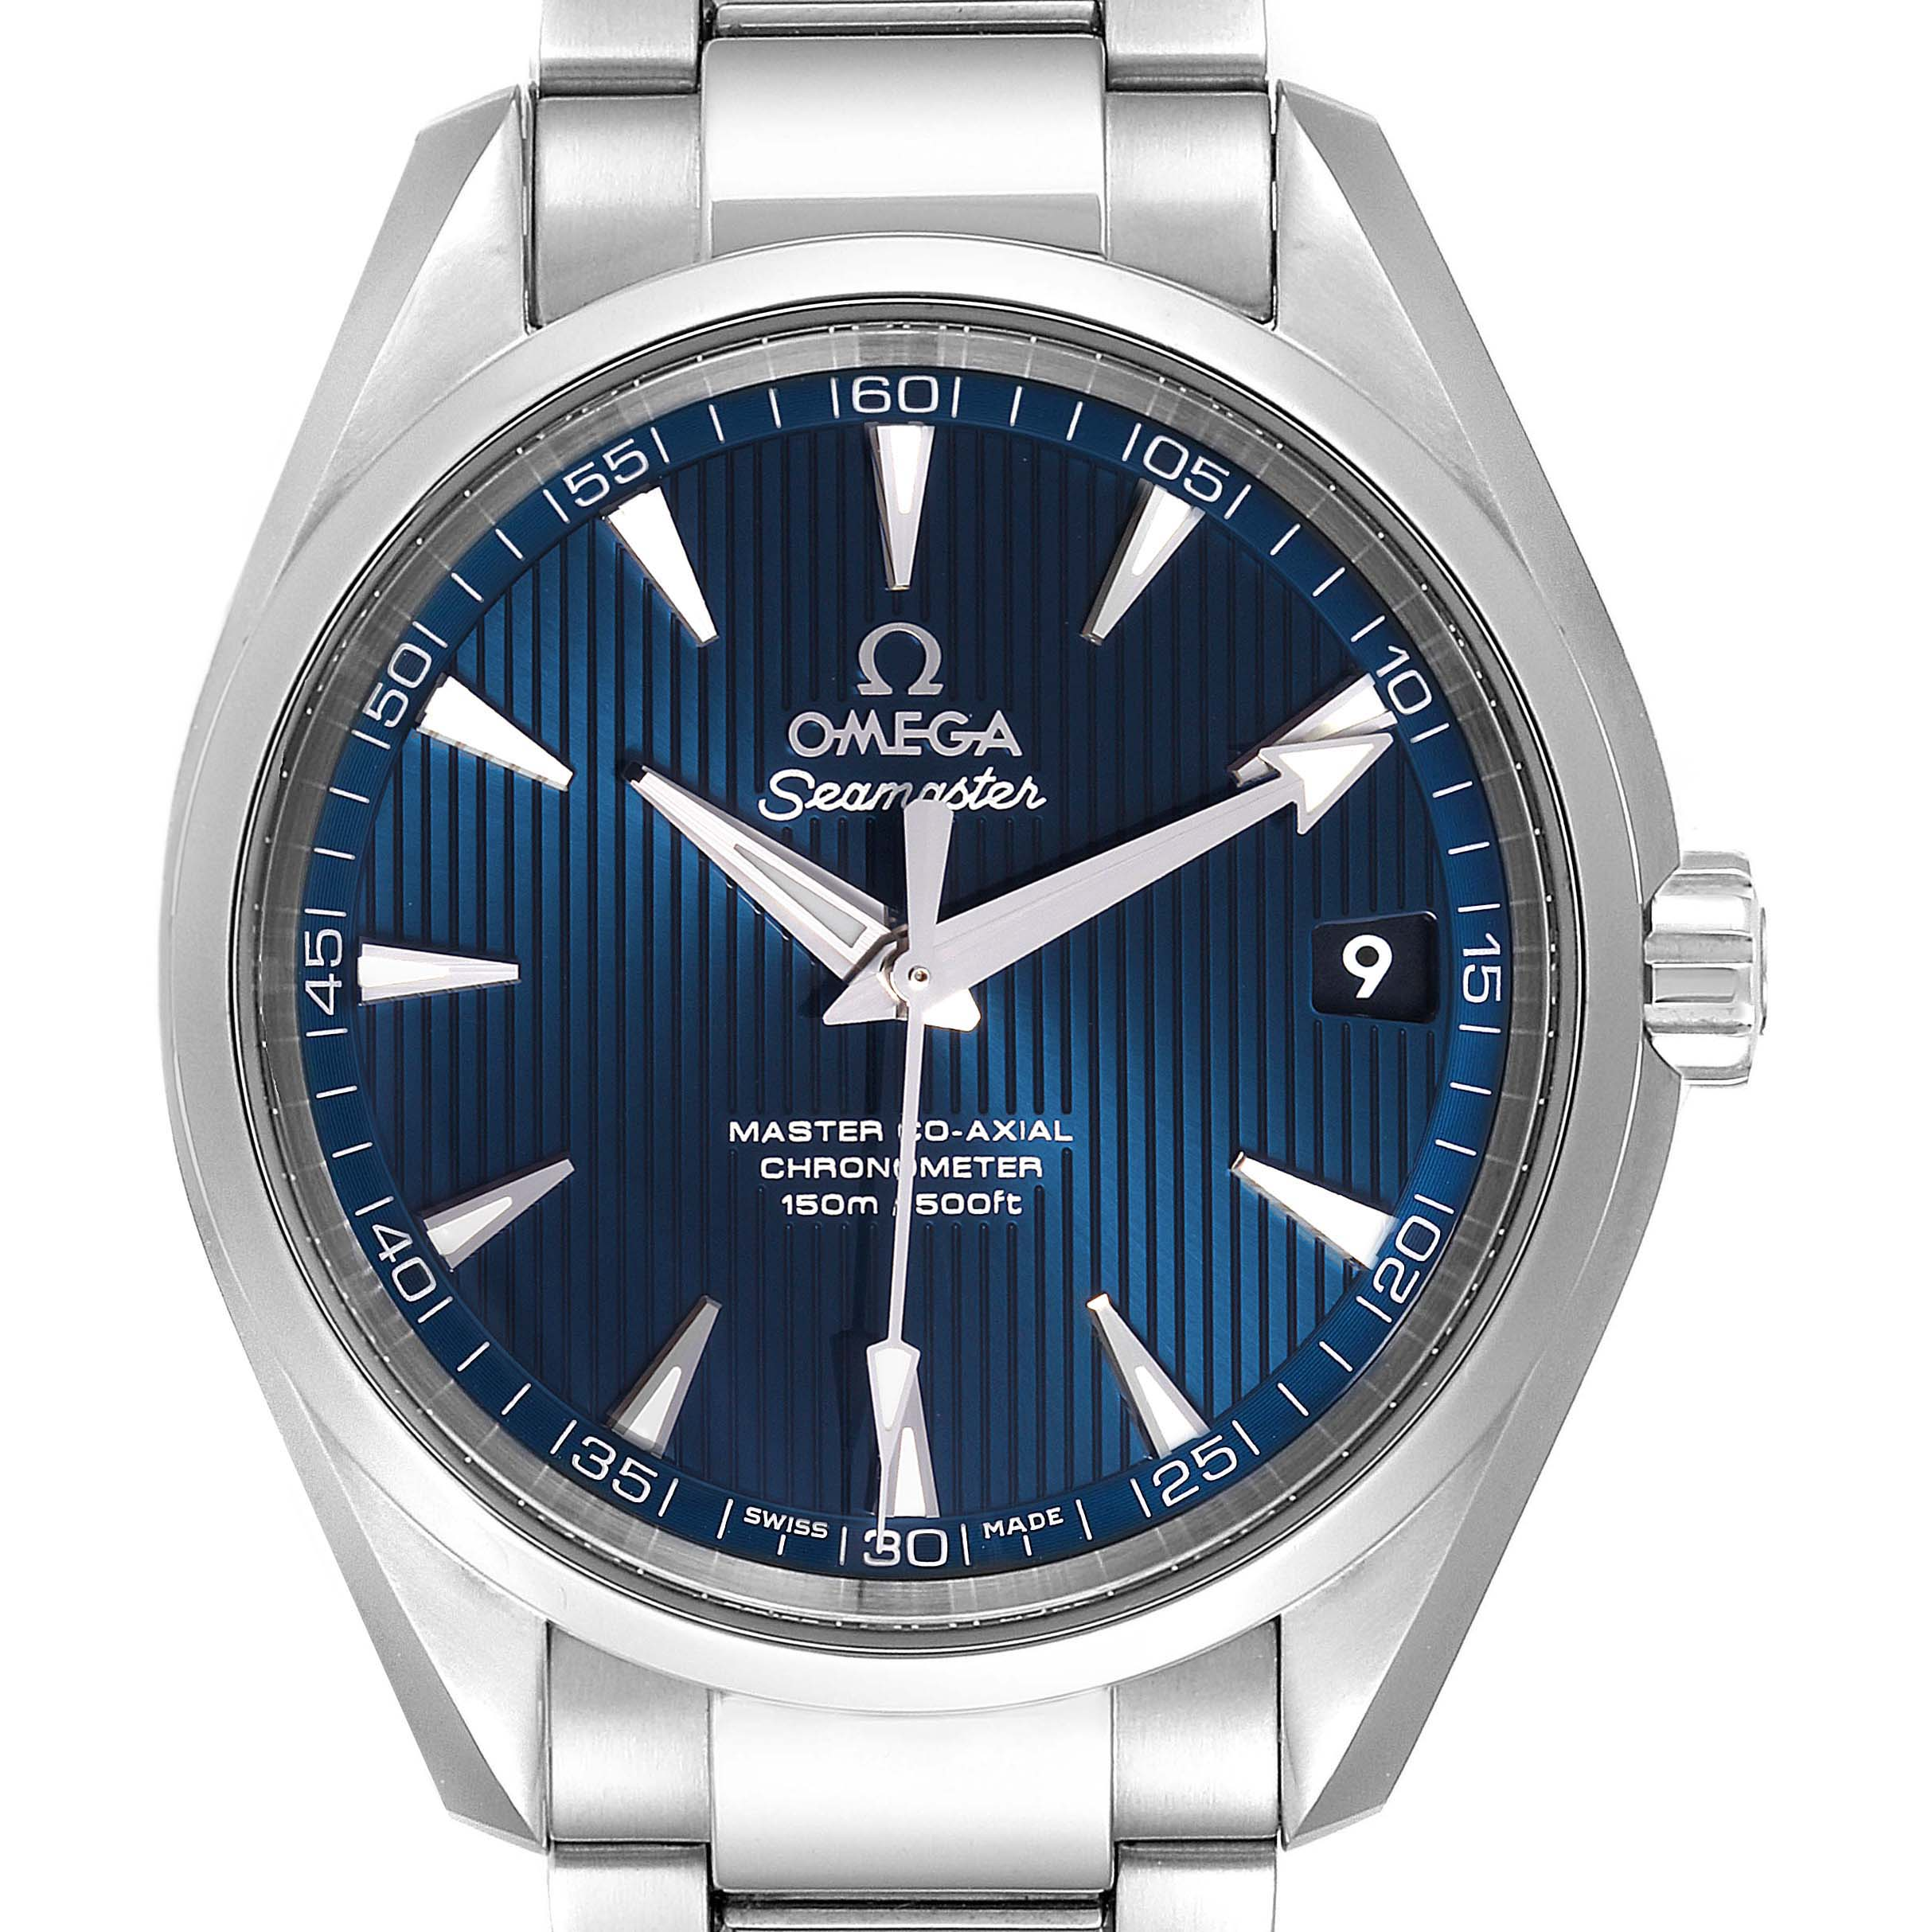 Omega Seamaster Aqua Terra Blue Dial Watch 231.10.39.21.03.002 Box Card